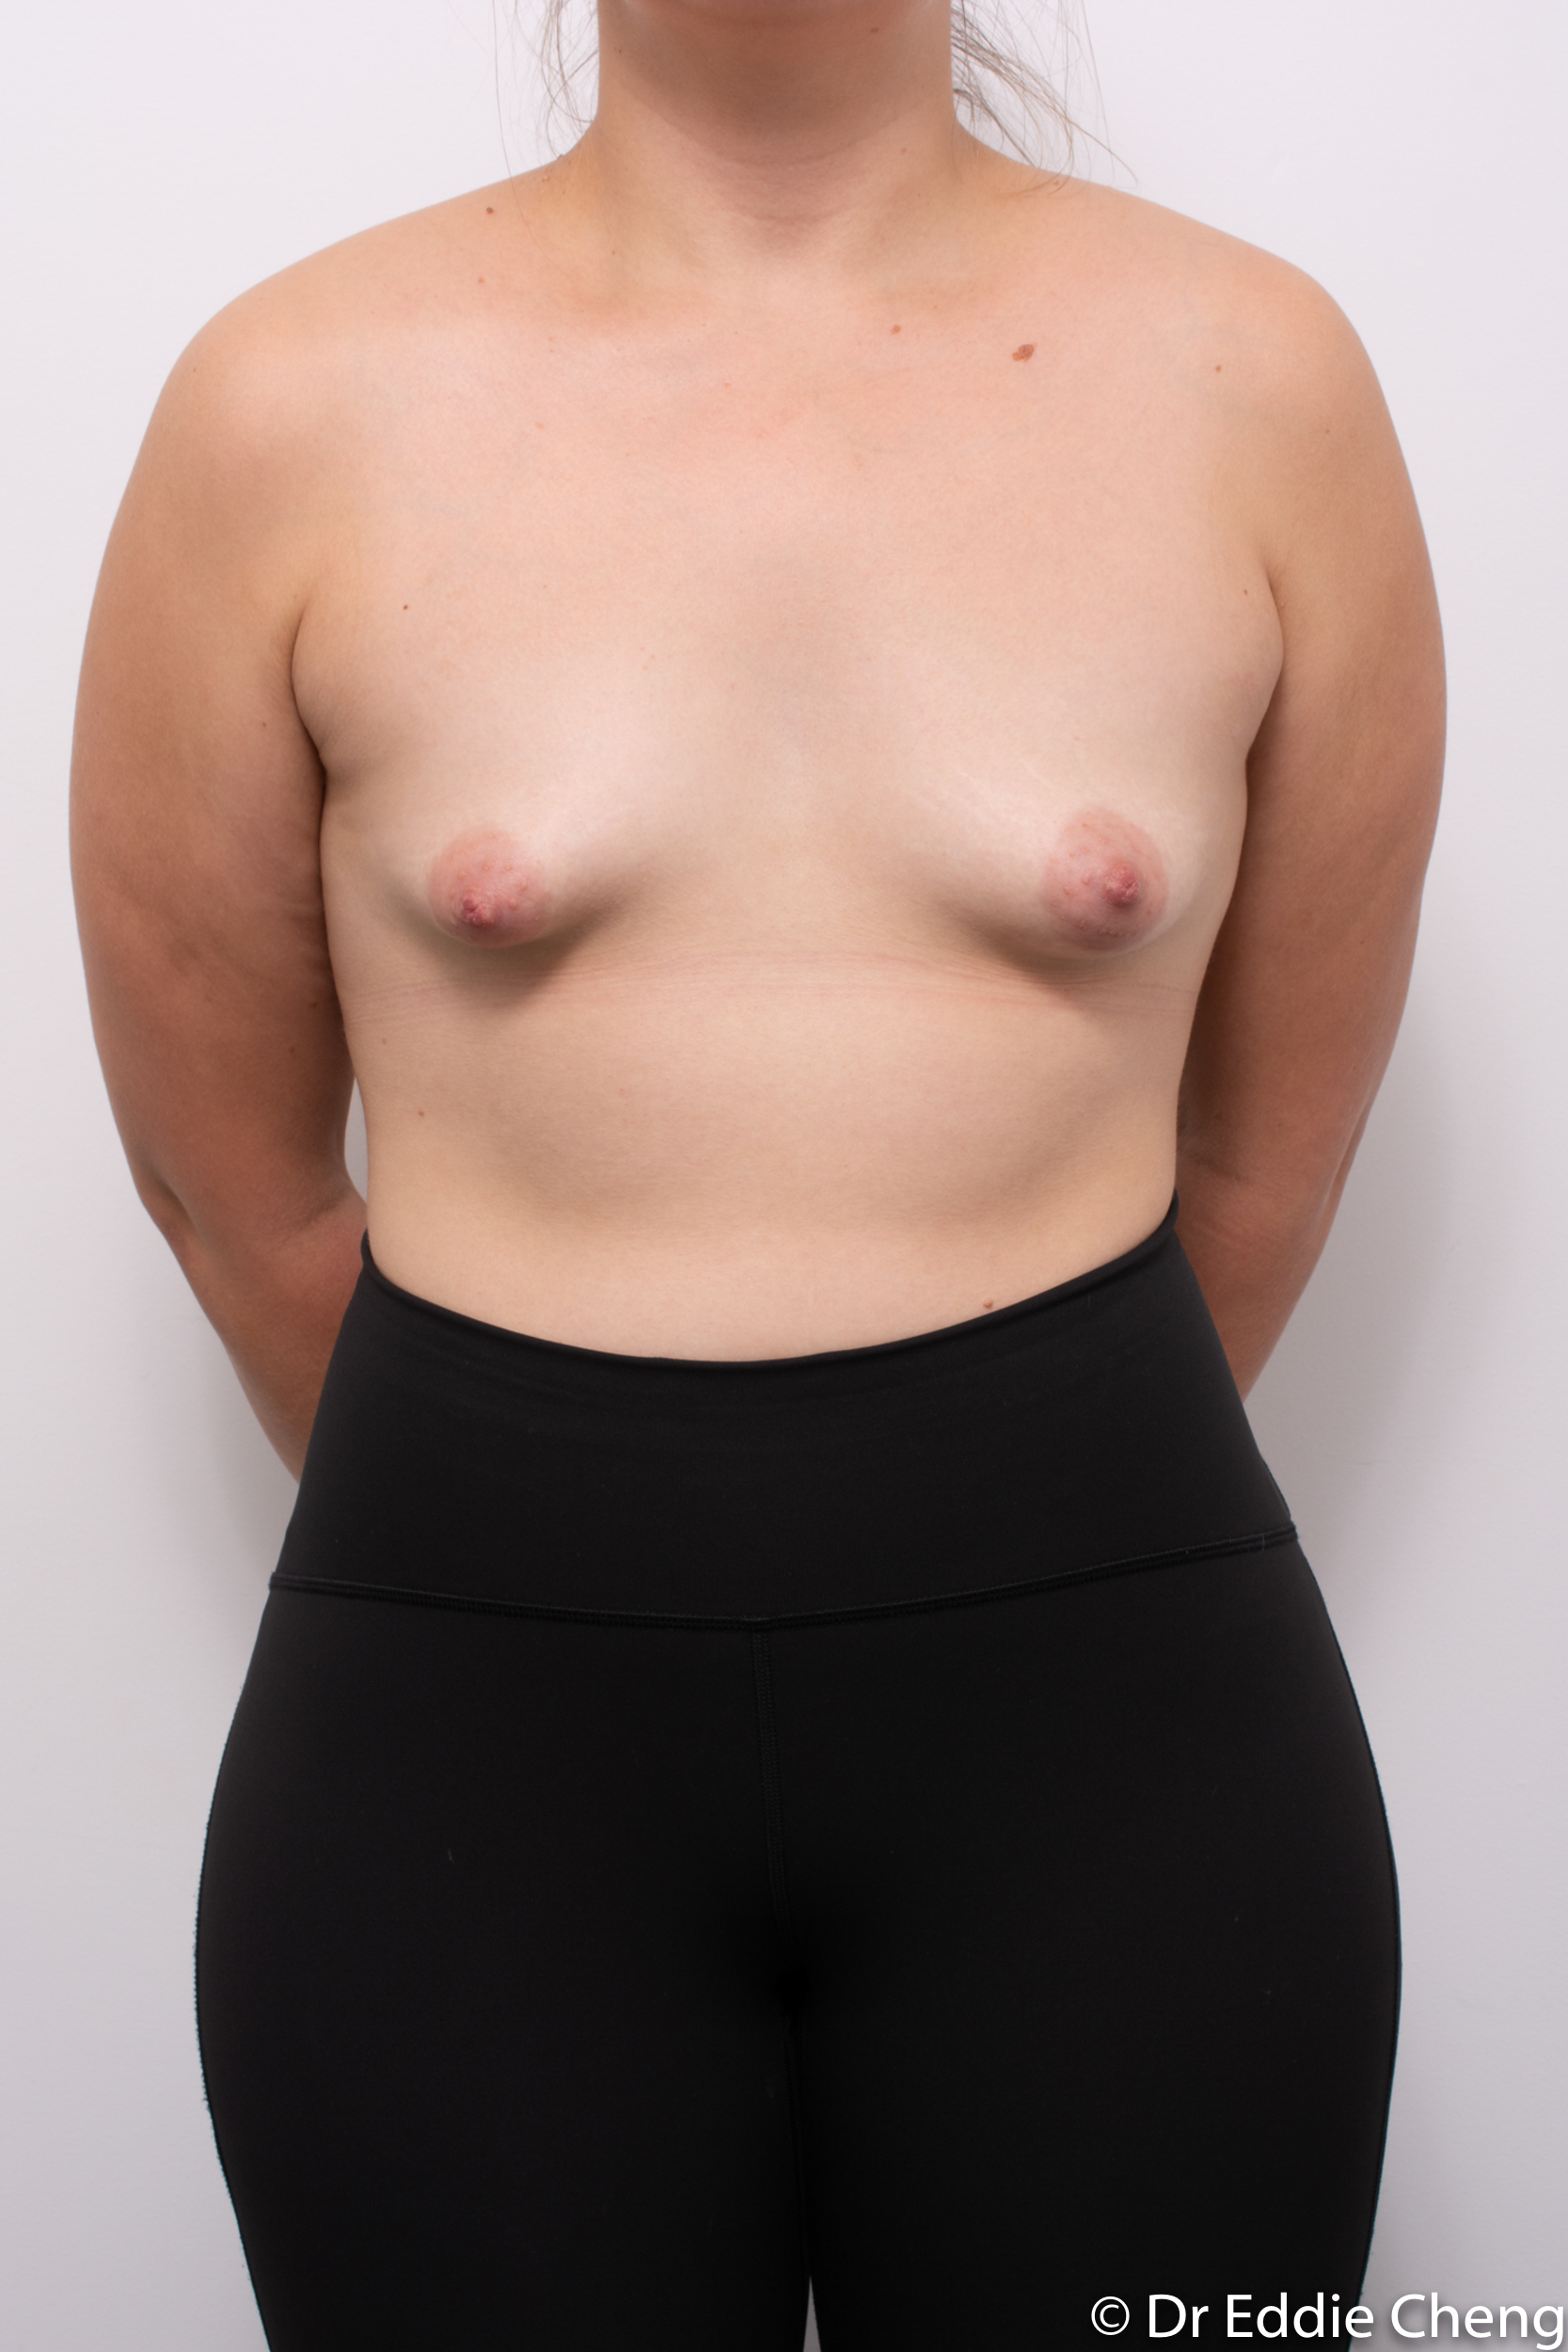 2 stage procedure tuberous breasts dr eddie cheng brisbane surgeon pre and post operative images -7-2